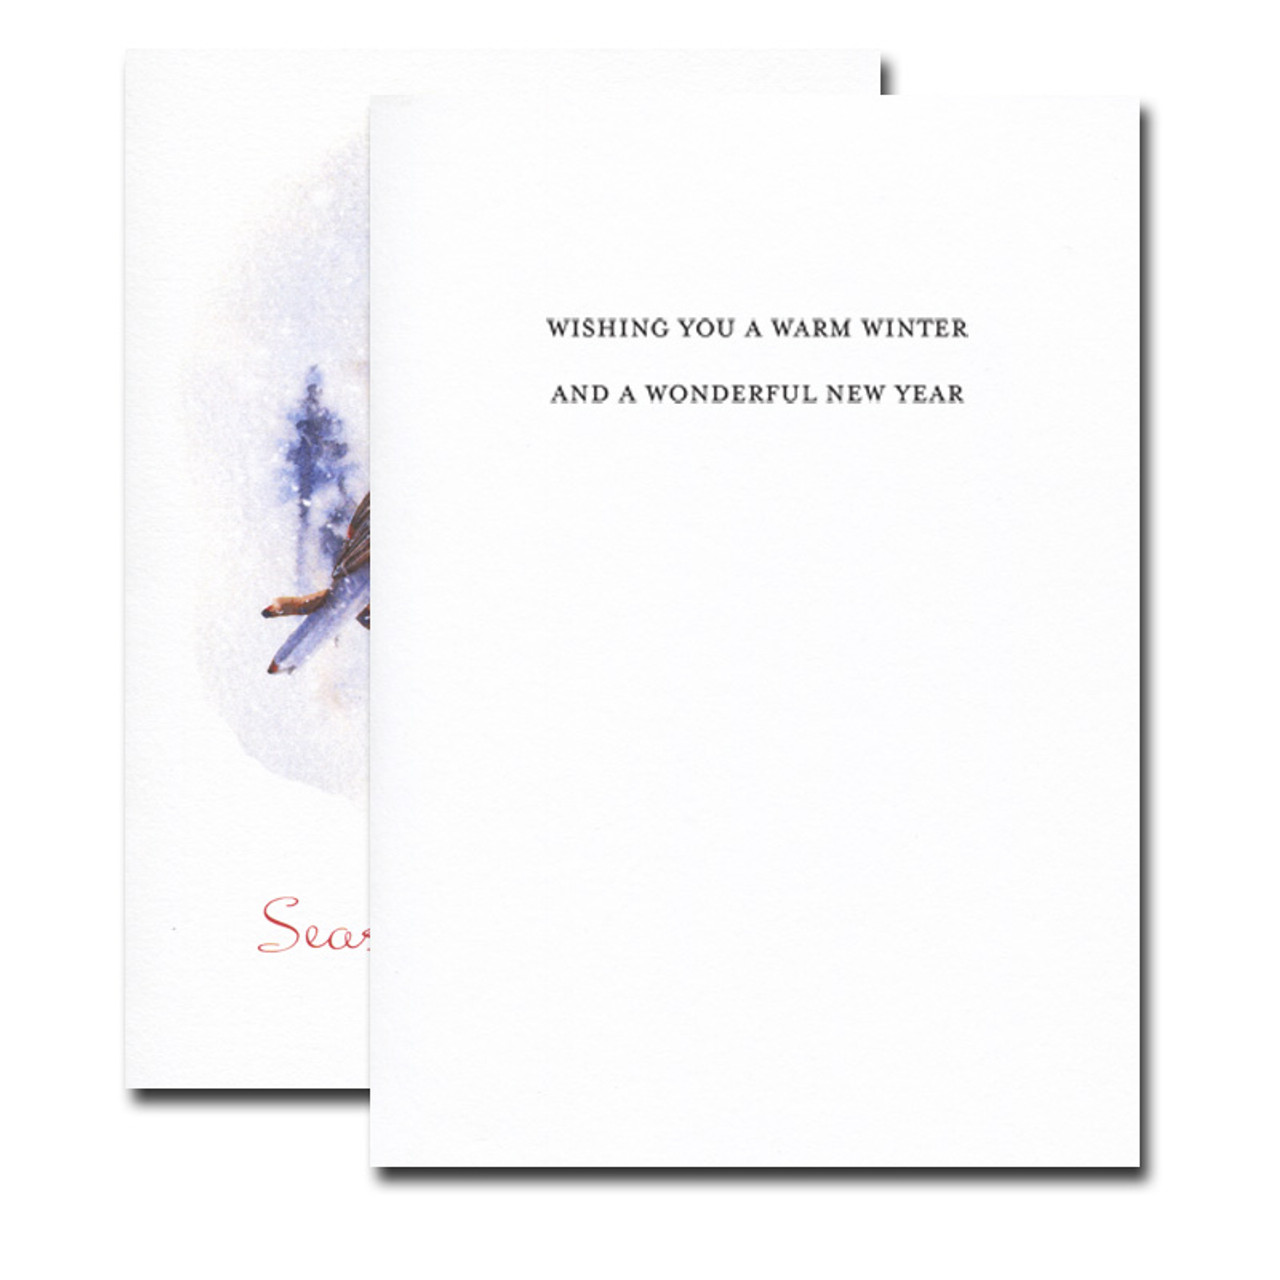 Little Robin Holiday Card inside reads: Wishing you a warm winter and a wonderful new year